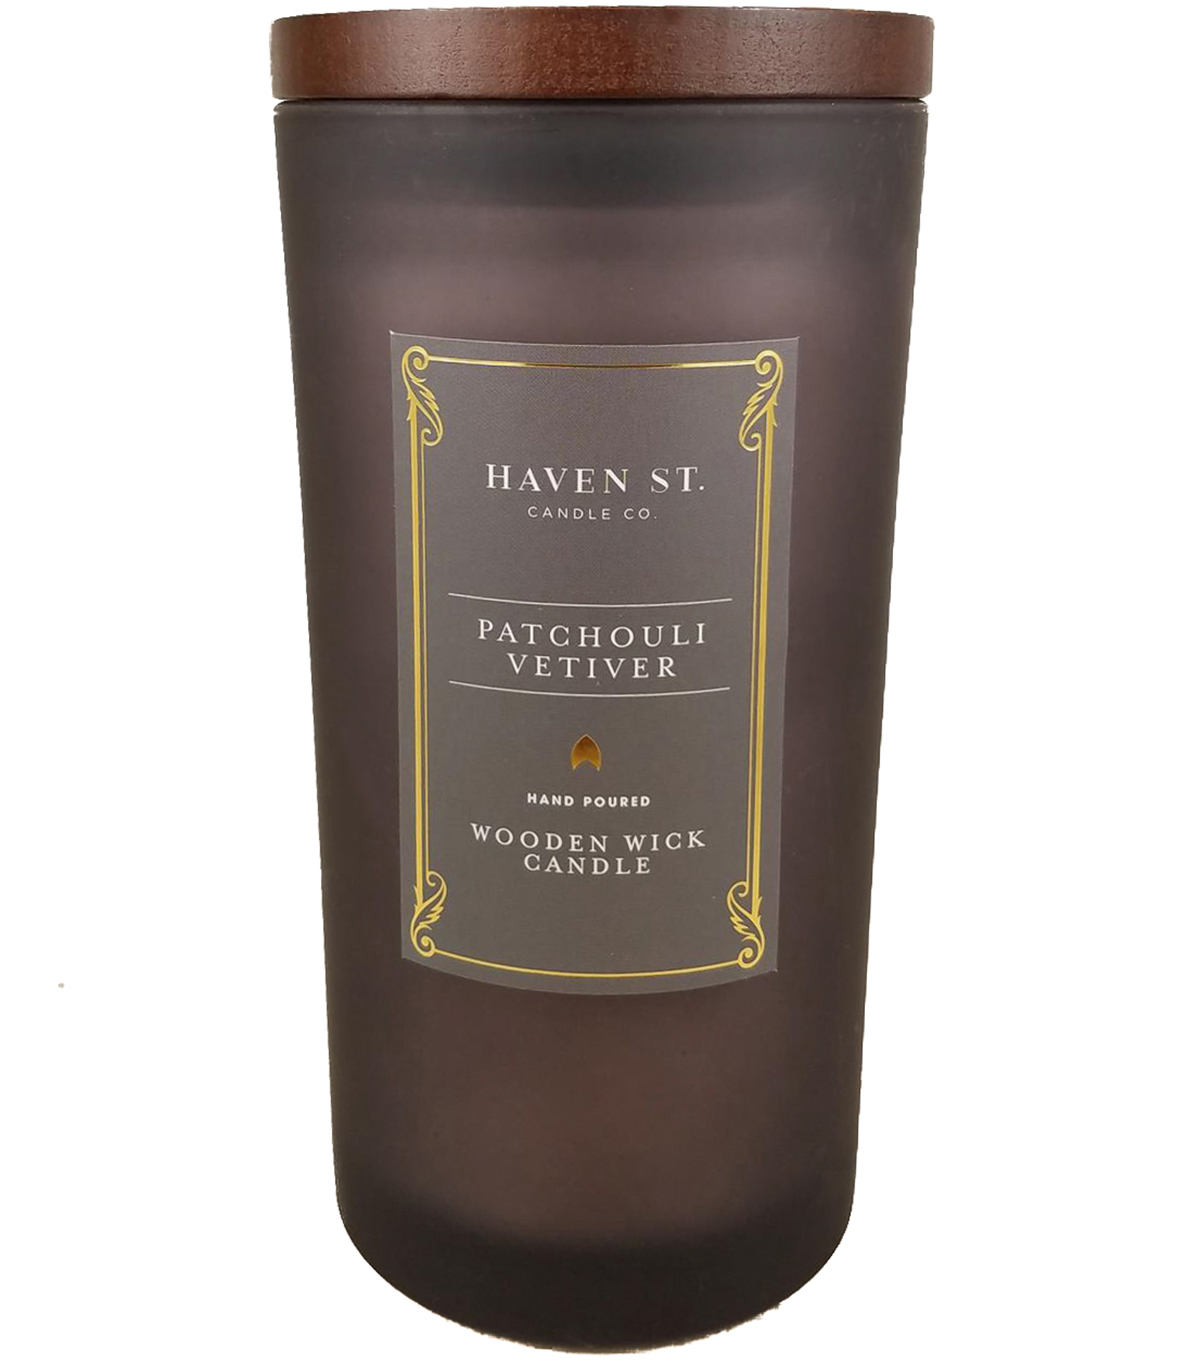 Haven St. Candle Co. 11 oz. Patchouli Vetiver Scented Wooden Wick Candle